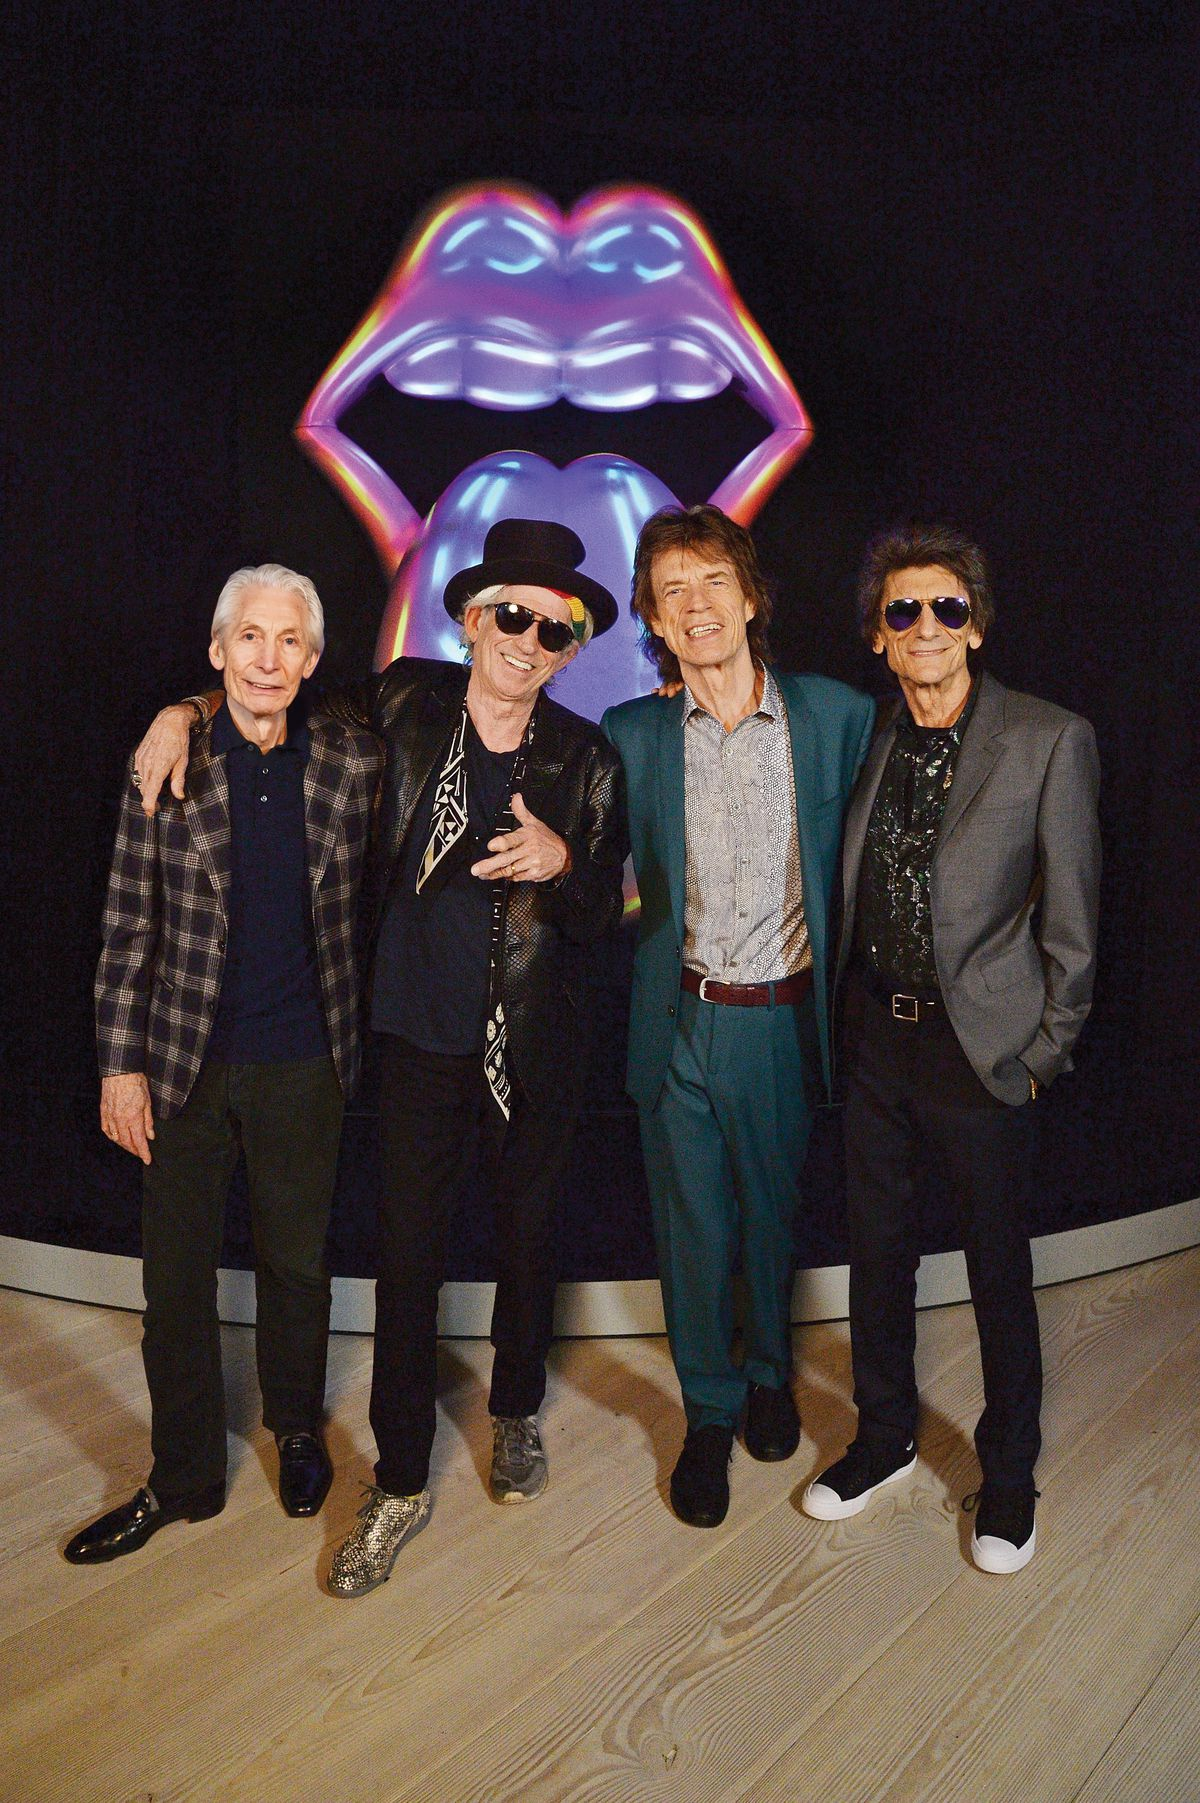 Charlie Watts (from left), Keith Richards, Mick Jagger and Ronnie Wood of The Rolling Stones pose for a photo during a preview of 'The Rolling Stones: Exhibitionism' at Saatchi Gallery on April 4, 2016 in London, England.   Photo by Dave J Hogan